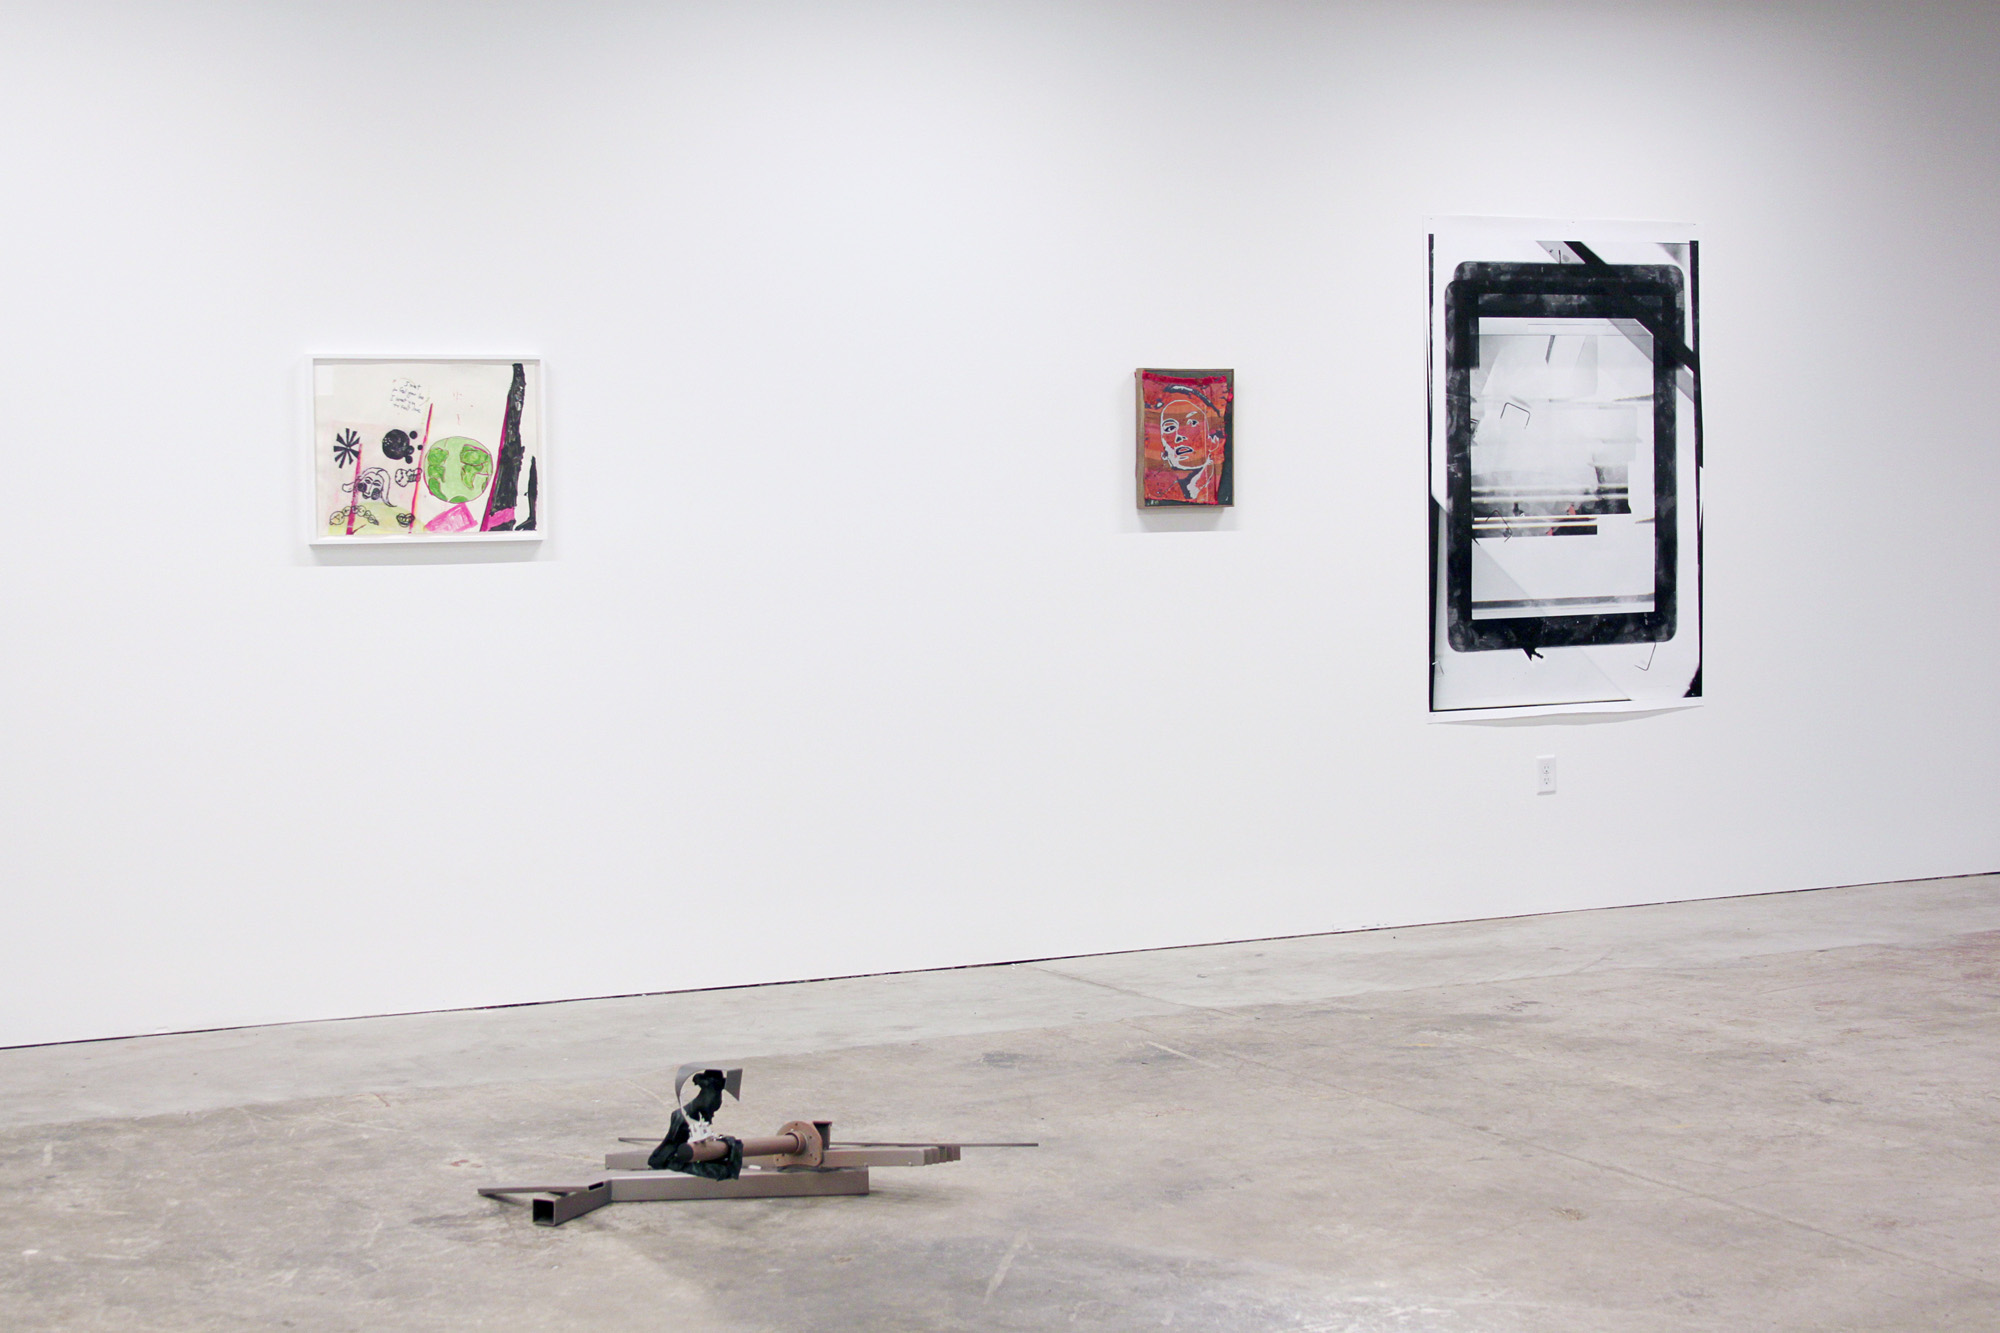 28_Group_Install_14_Springsteen_Gallery_Wrath_Pin_Face_Binned_at_Et_Al_Etc_at_Minnesota_Street_Project.jpg